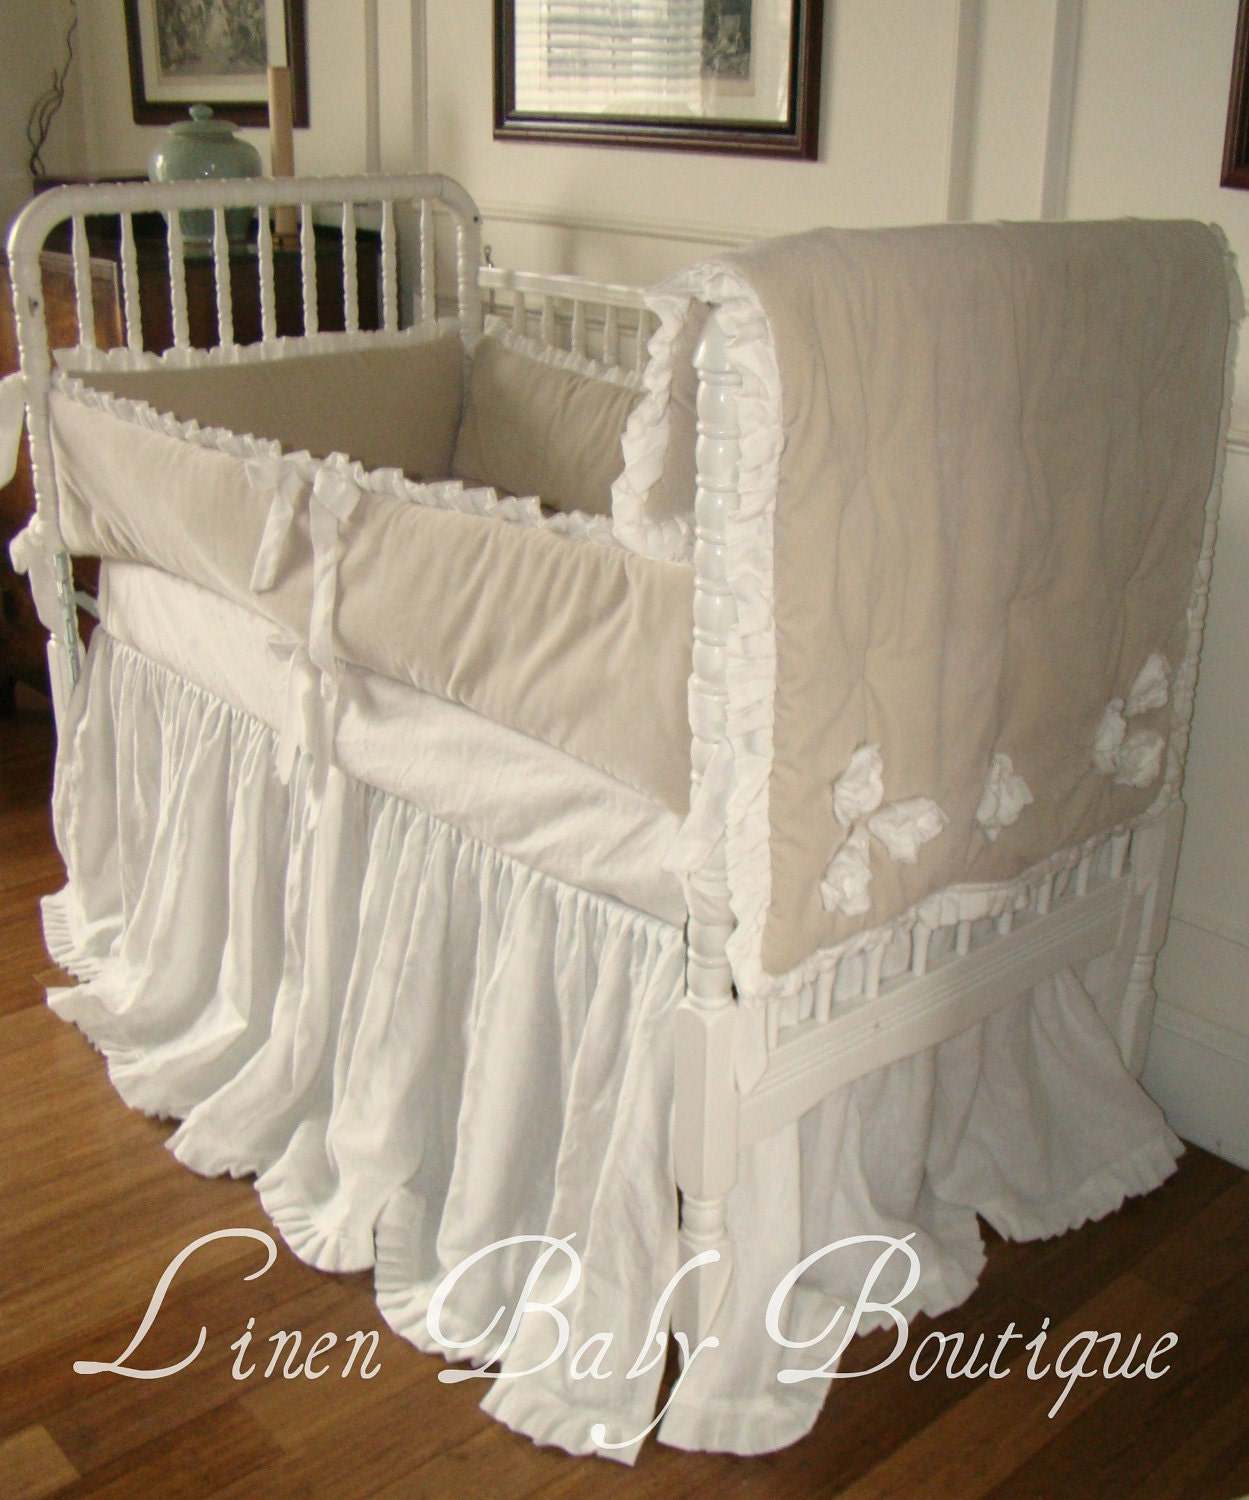 Custom Baby Bedding Crib Set Ivory Linen And Cream Velvet With